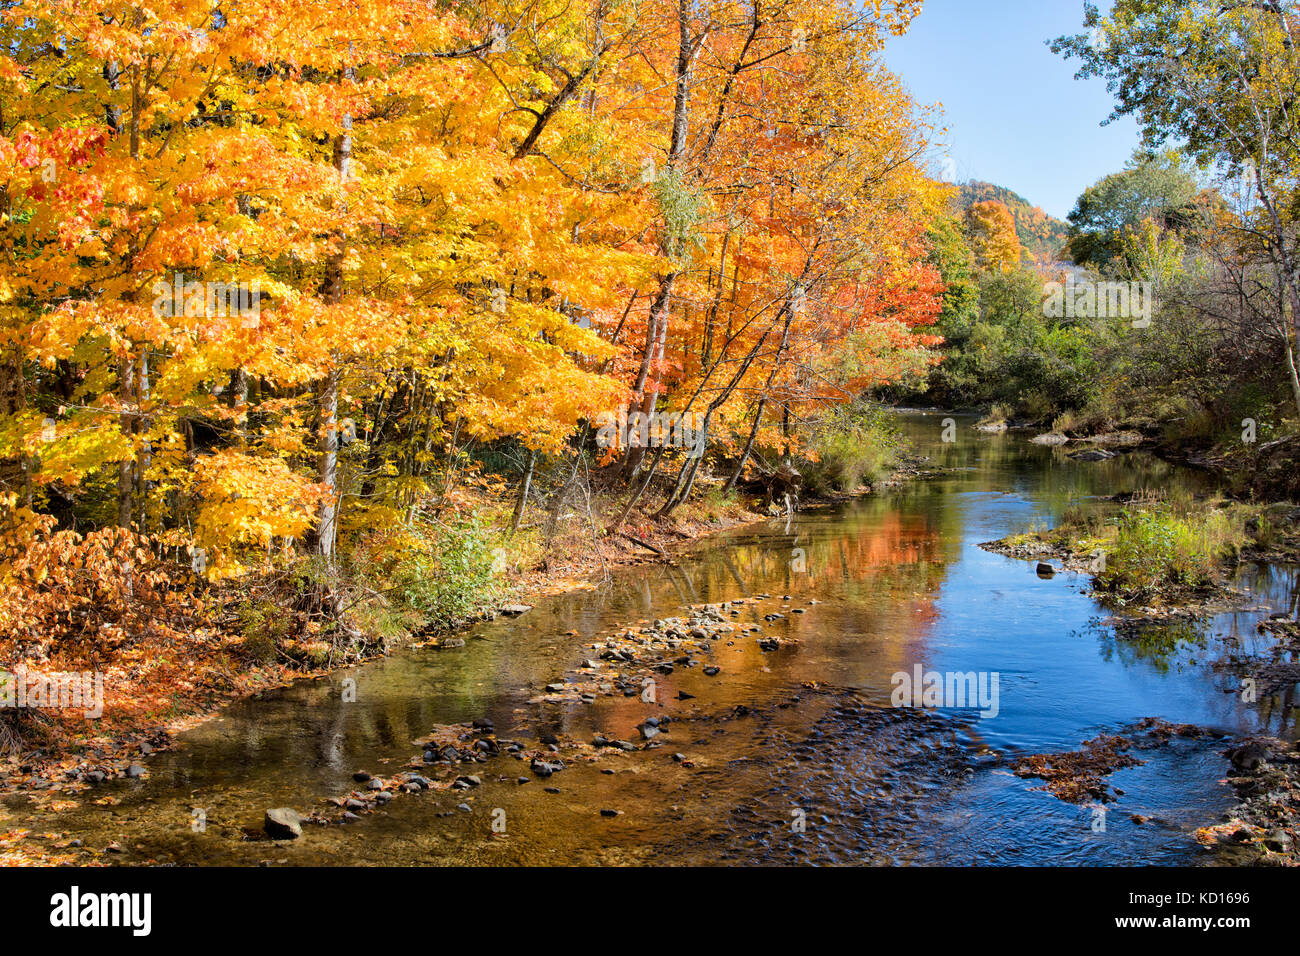 Herbst Laub spiegelt sich in Trout Creek, moores Mühlen, Waterford, New Brunswick, Kanada Stockbild